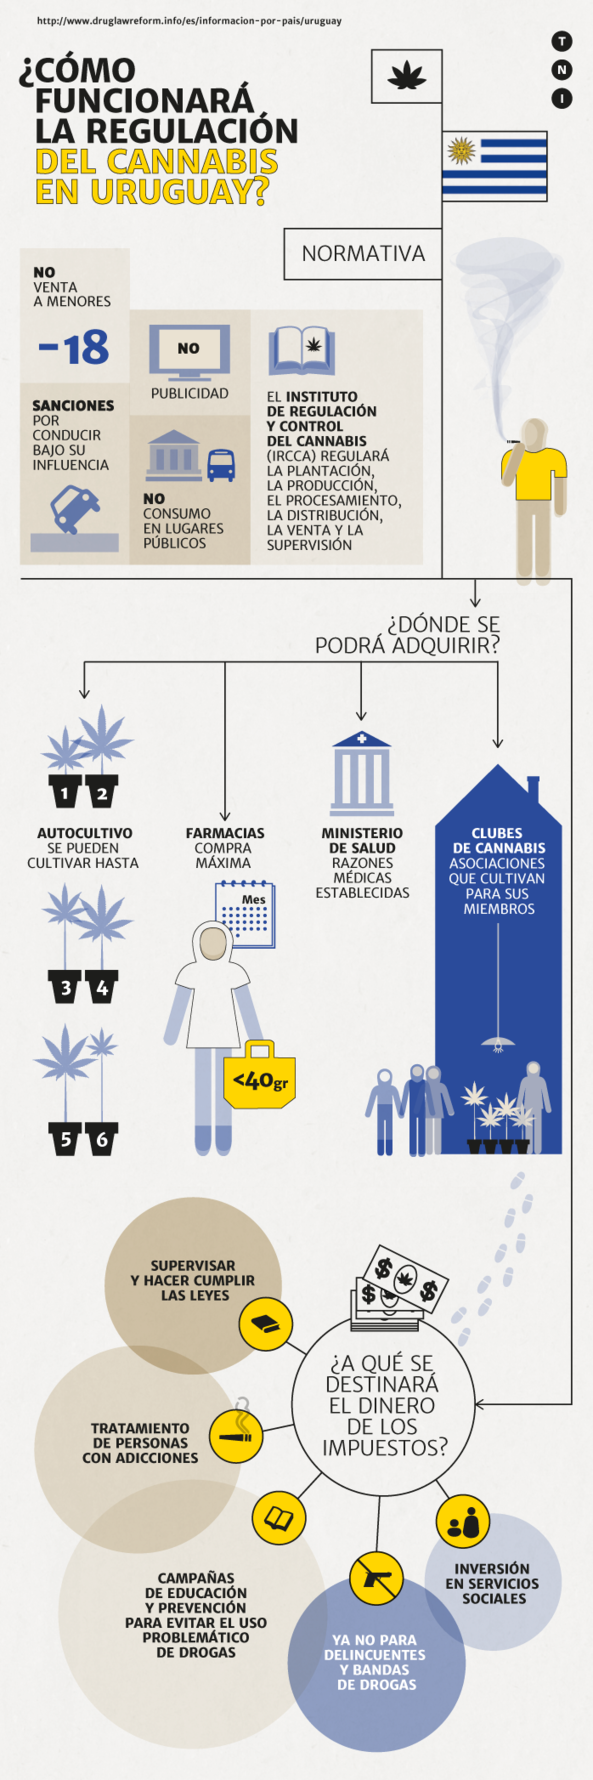 Uruguay_WEB_infographic2_Spanish.resized